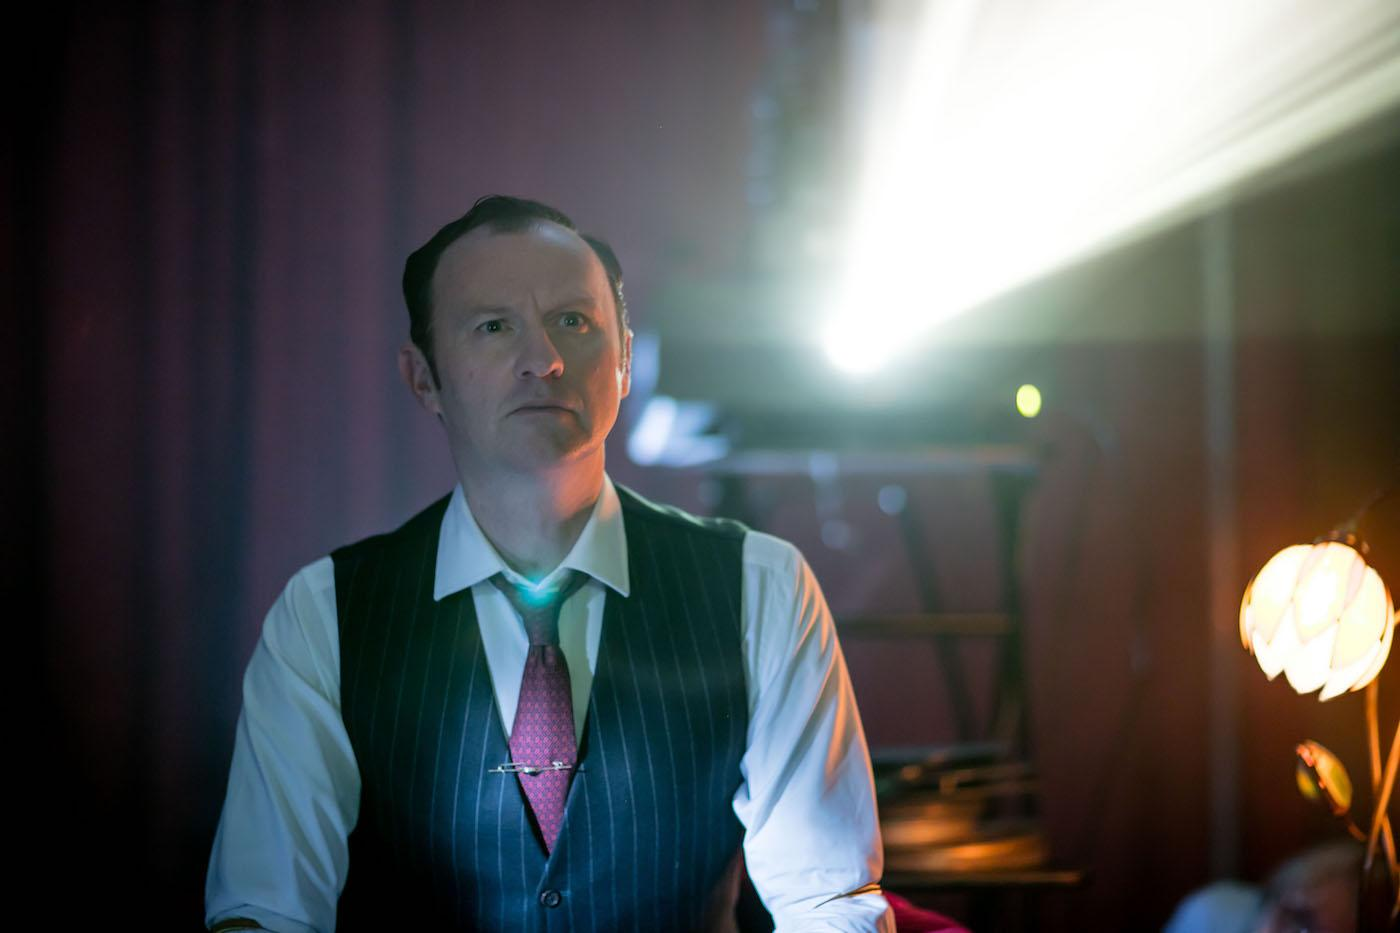 Mark Gatiss's Mycroft has been telling lots of lies, but the truth really is horrible. (Laurence Cendrowicz/Hartswood Films & MASTERPIECE)